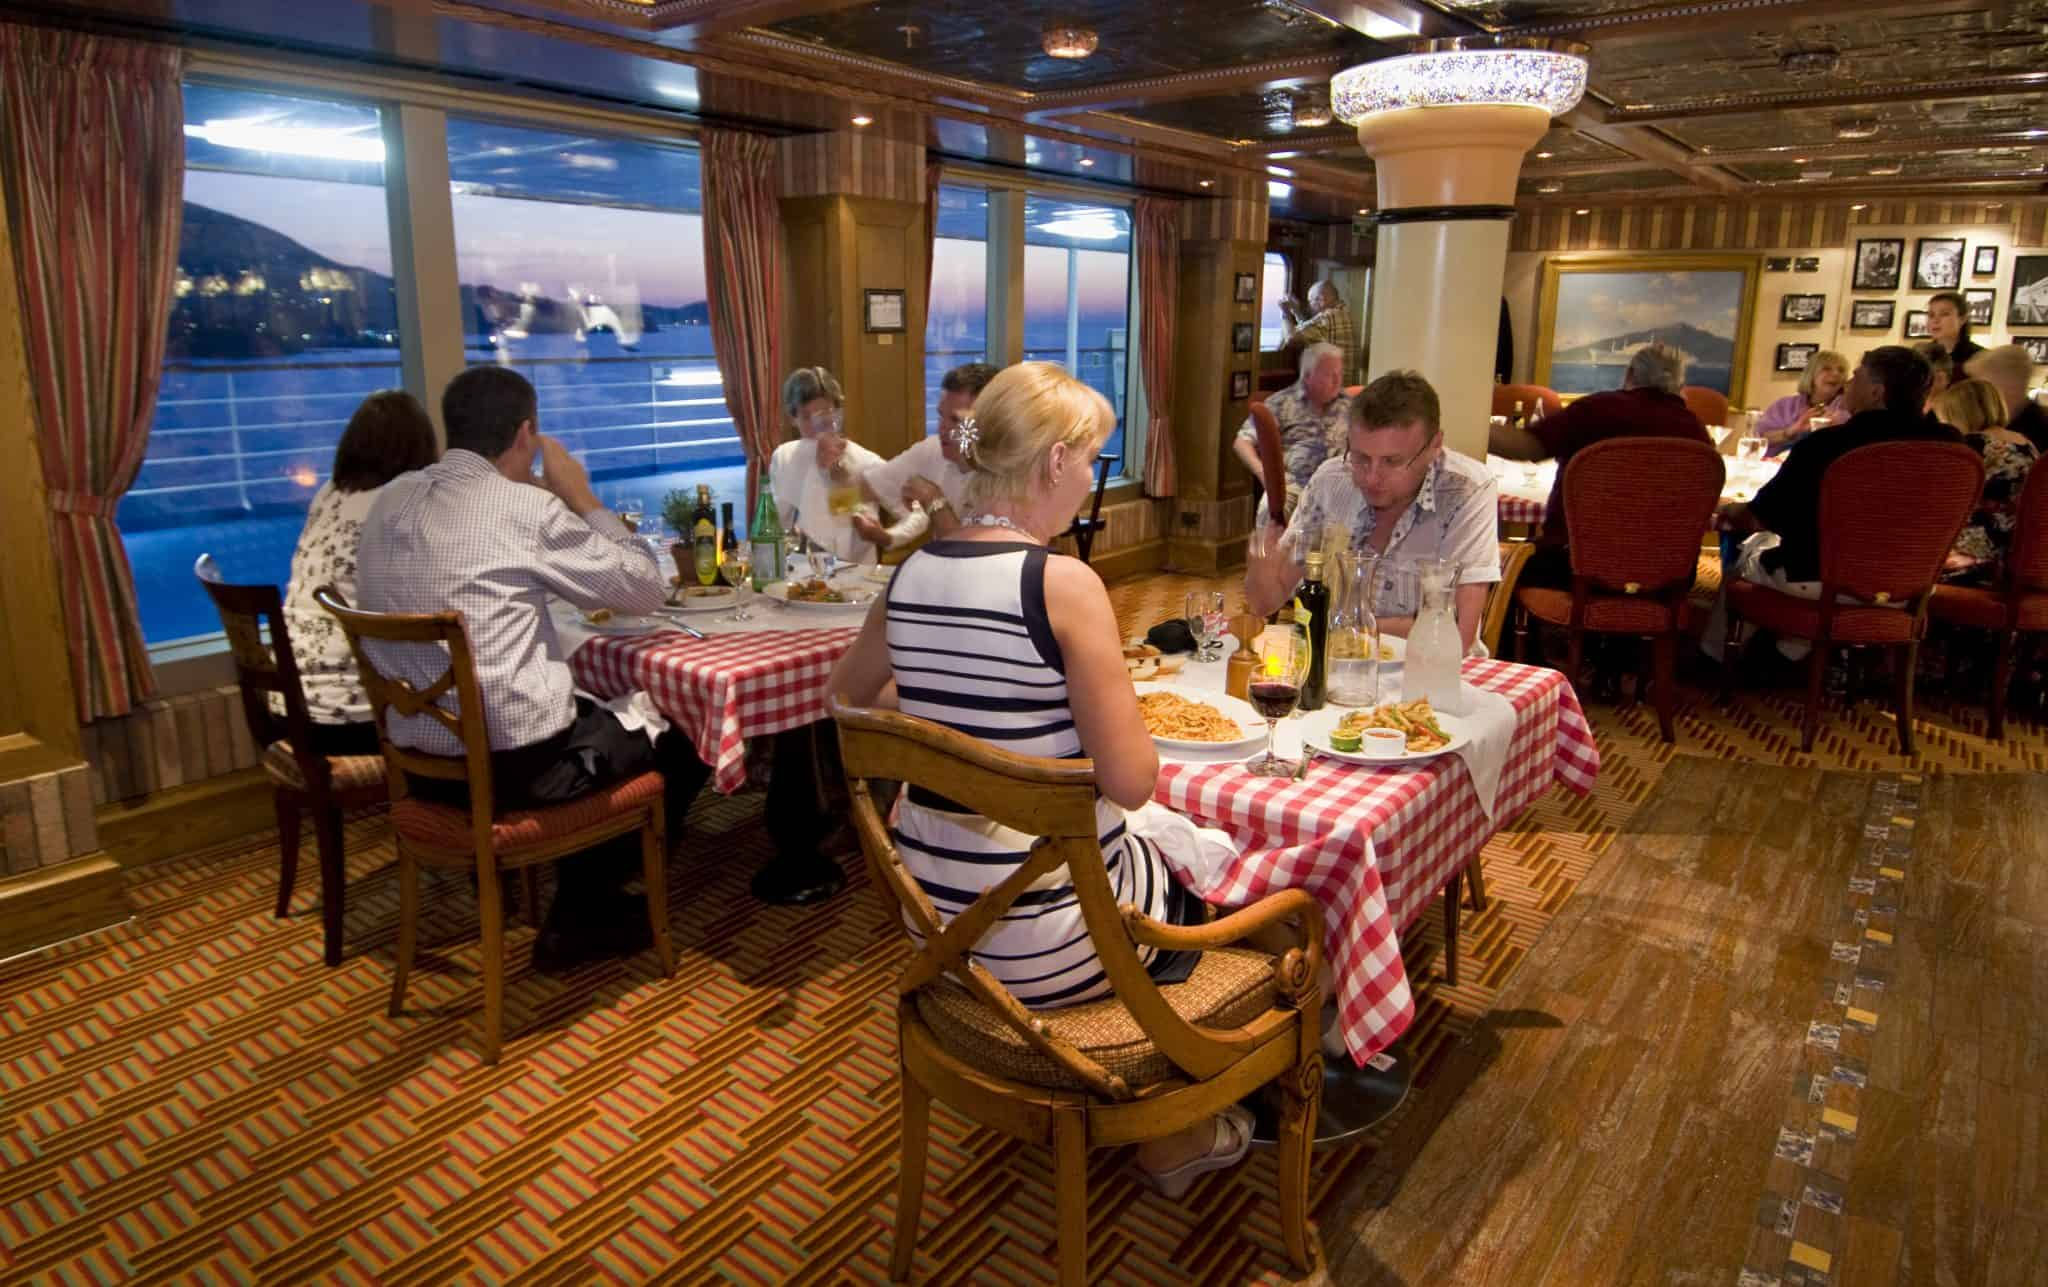 Carnival Magic Cucina Del Capitano Lunch Menu Carnival Magic Begins Sailing From Port Canaveral Guys